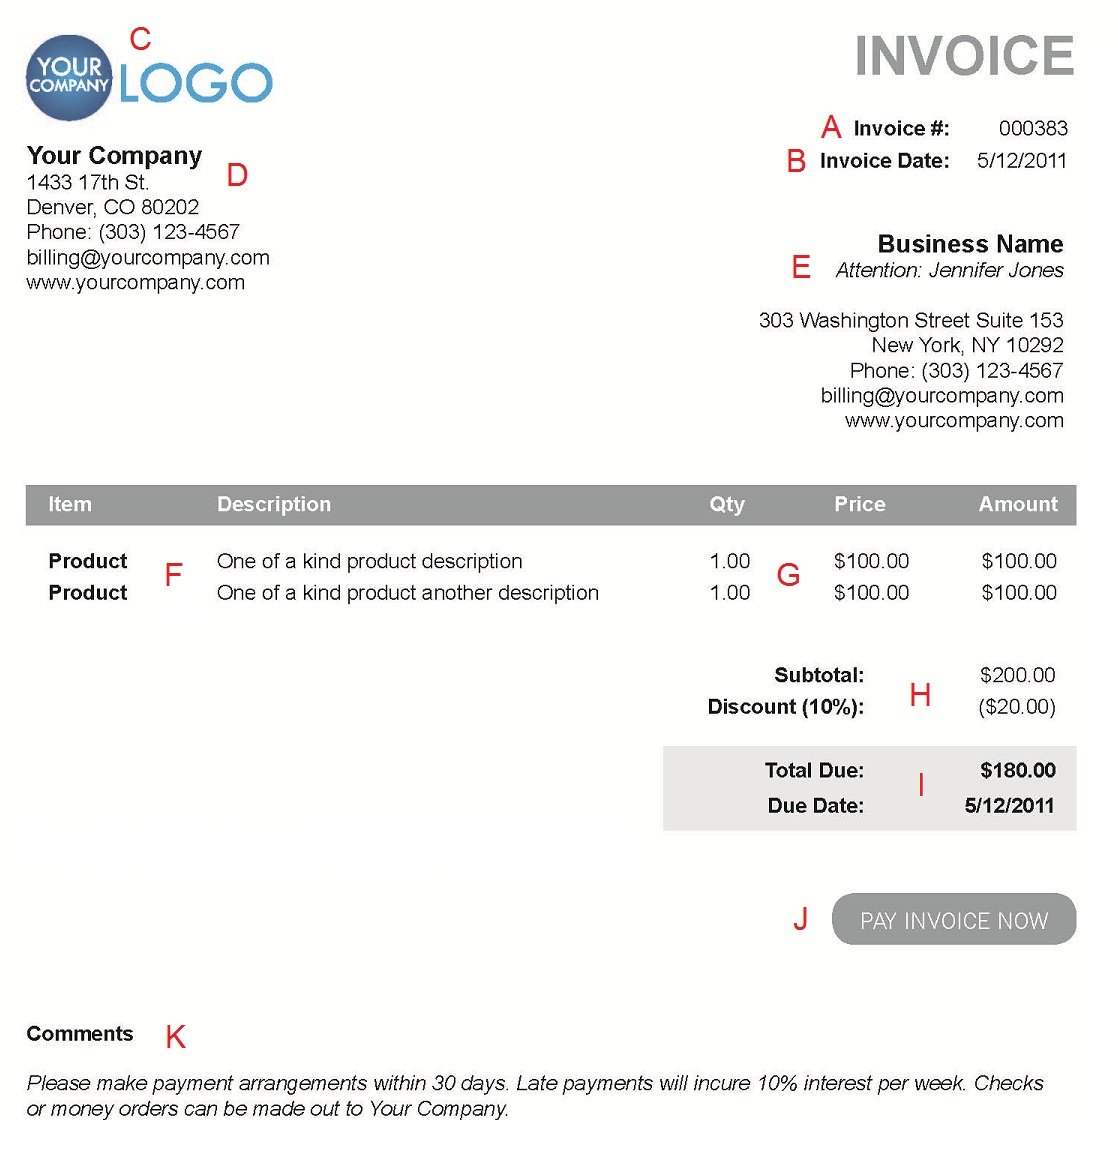 Breakupus  Gorgeous The  Different Sections Of An Electronic Payment Invoice With Exciting A  With Astonishing Excel  Invoice Template Also Invoice Payment Letter In Addition Online Invoice Pdf And Creating An Invoice Template As Well As Cash Invoice Sample Additionally Window Cleaning Invoice Template From Paysimplecom With Breakupus  Exciting The  Different Sections Of An Electronic Payment Invoice With Astonishing A  And Gorgeous Excel  Invoice Template Also Invoice Payment Letter In Addition Online Invoice Pdf From Paysimplecom